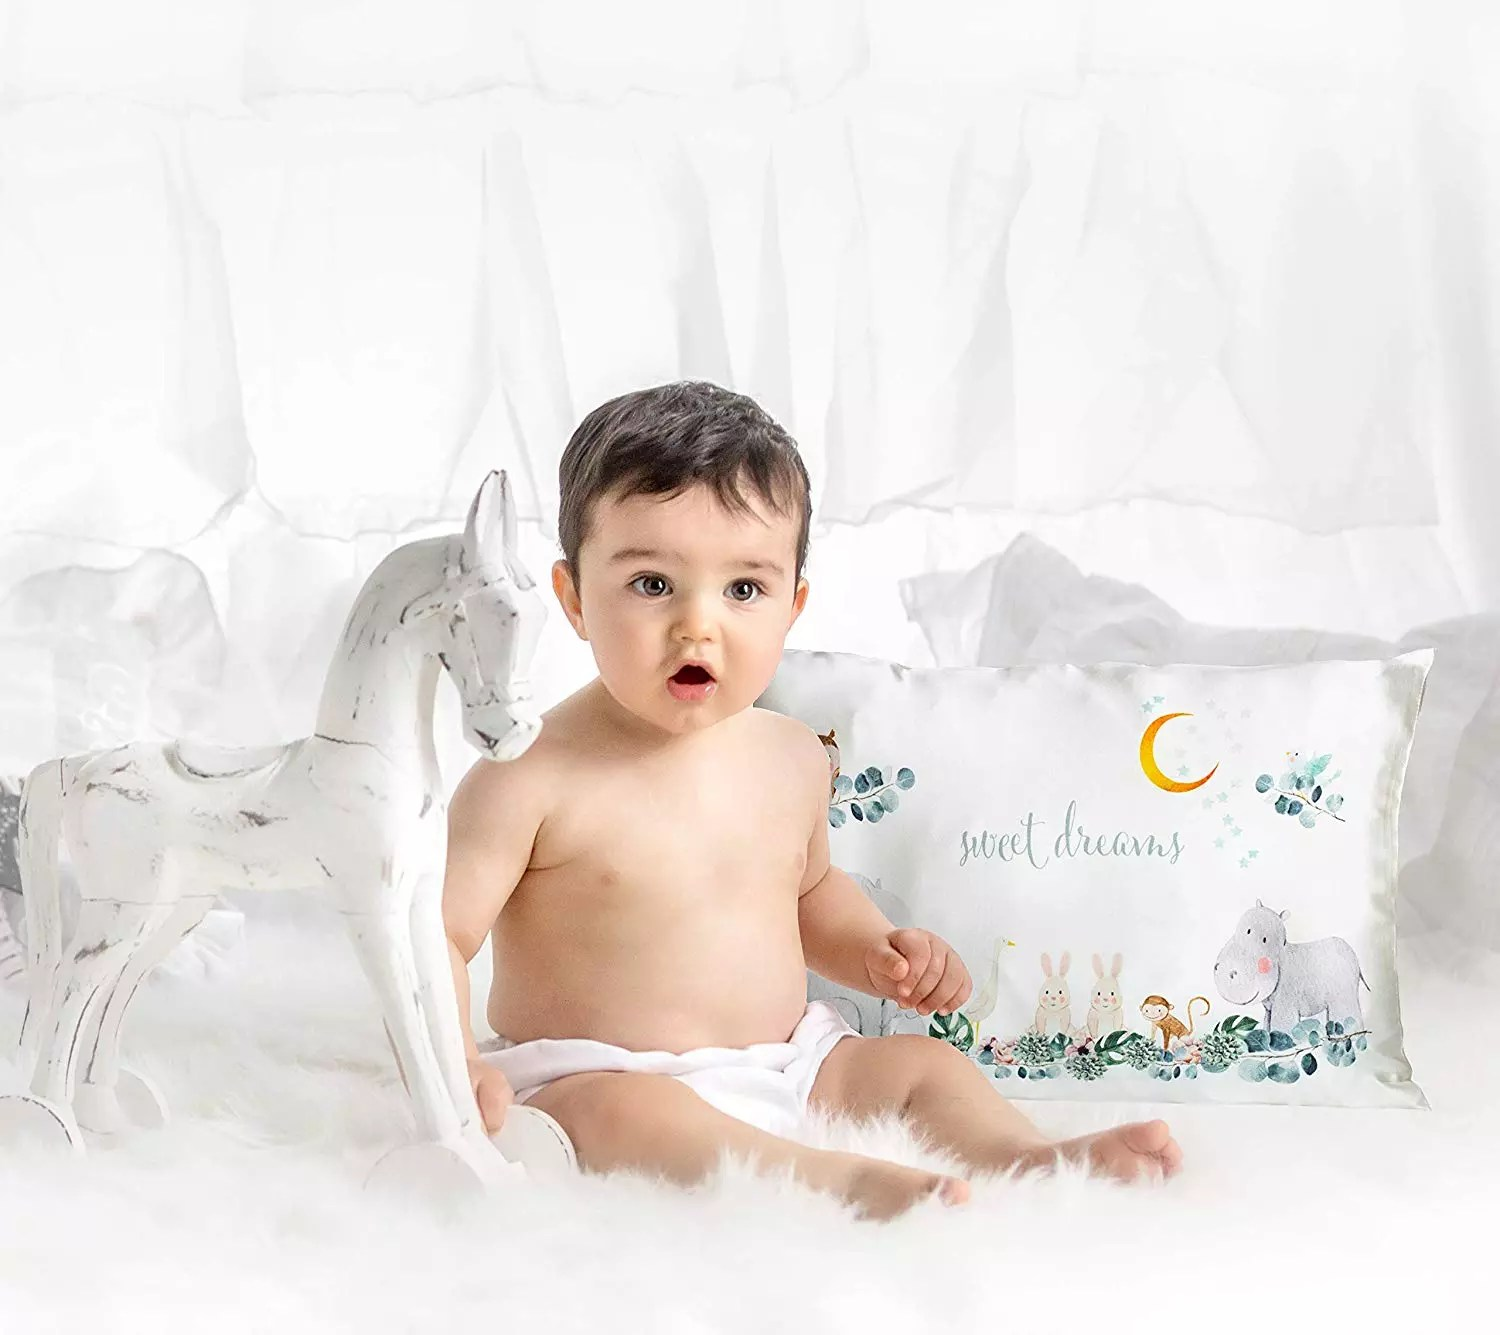 100 natural silk baby and kids sleeping pillow cover 13x18 hypoallergenic skin and hair protection girls and boys desi buy custom printed